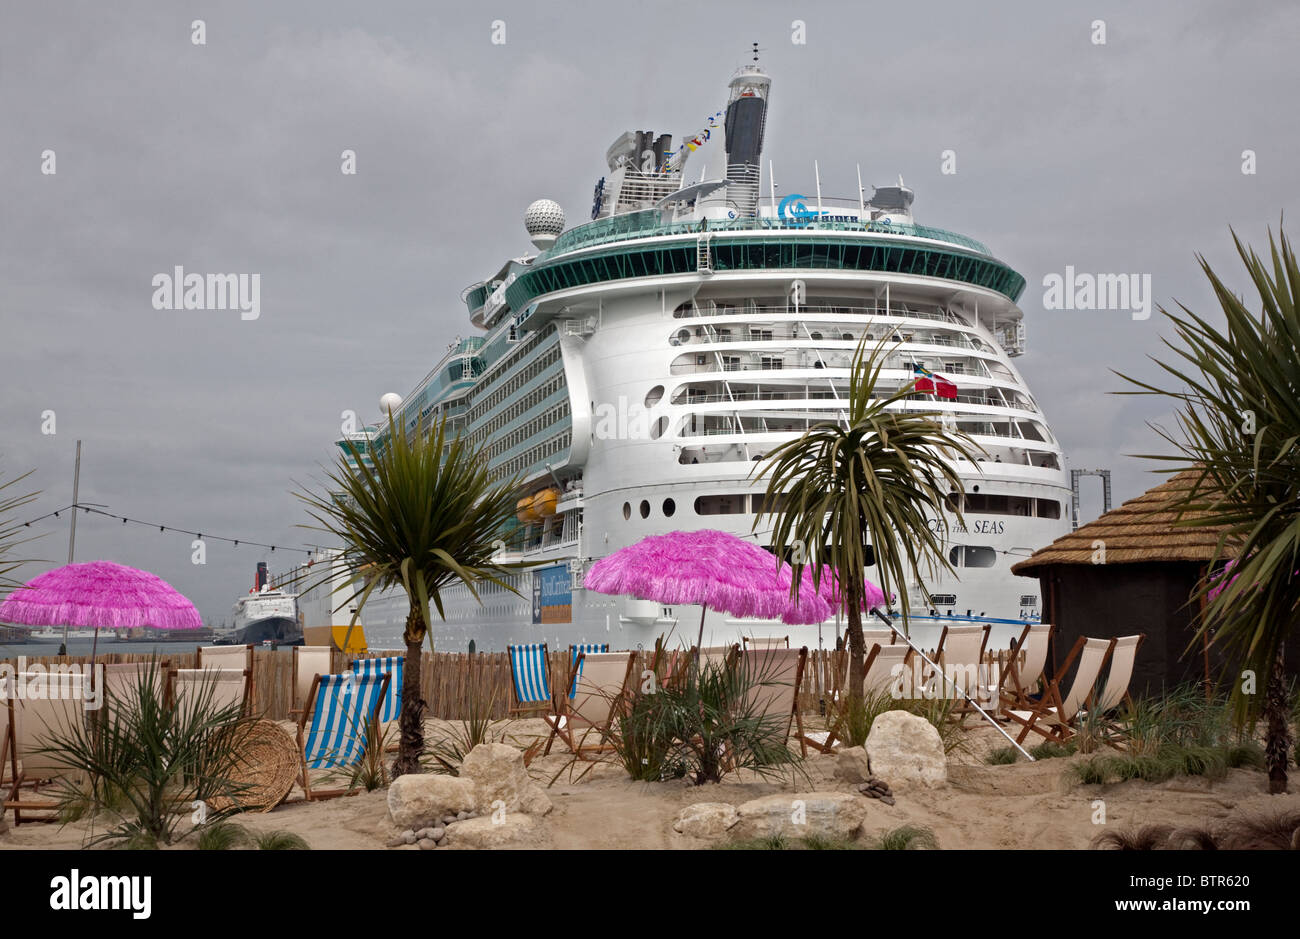 Royal Caribbean Independence of the Seas with a Promotional Shoreside Display, Southampton Water, Hampshire, England. - Stock Image